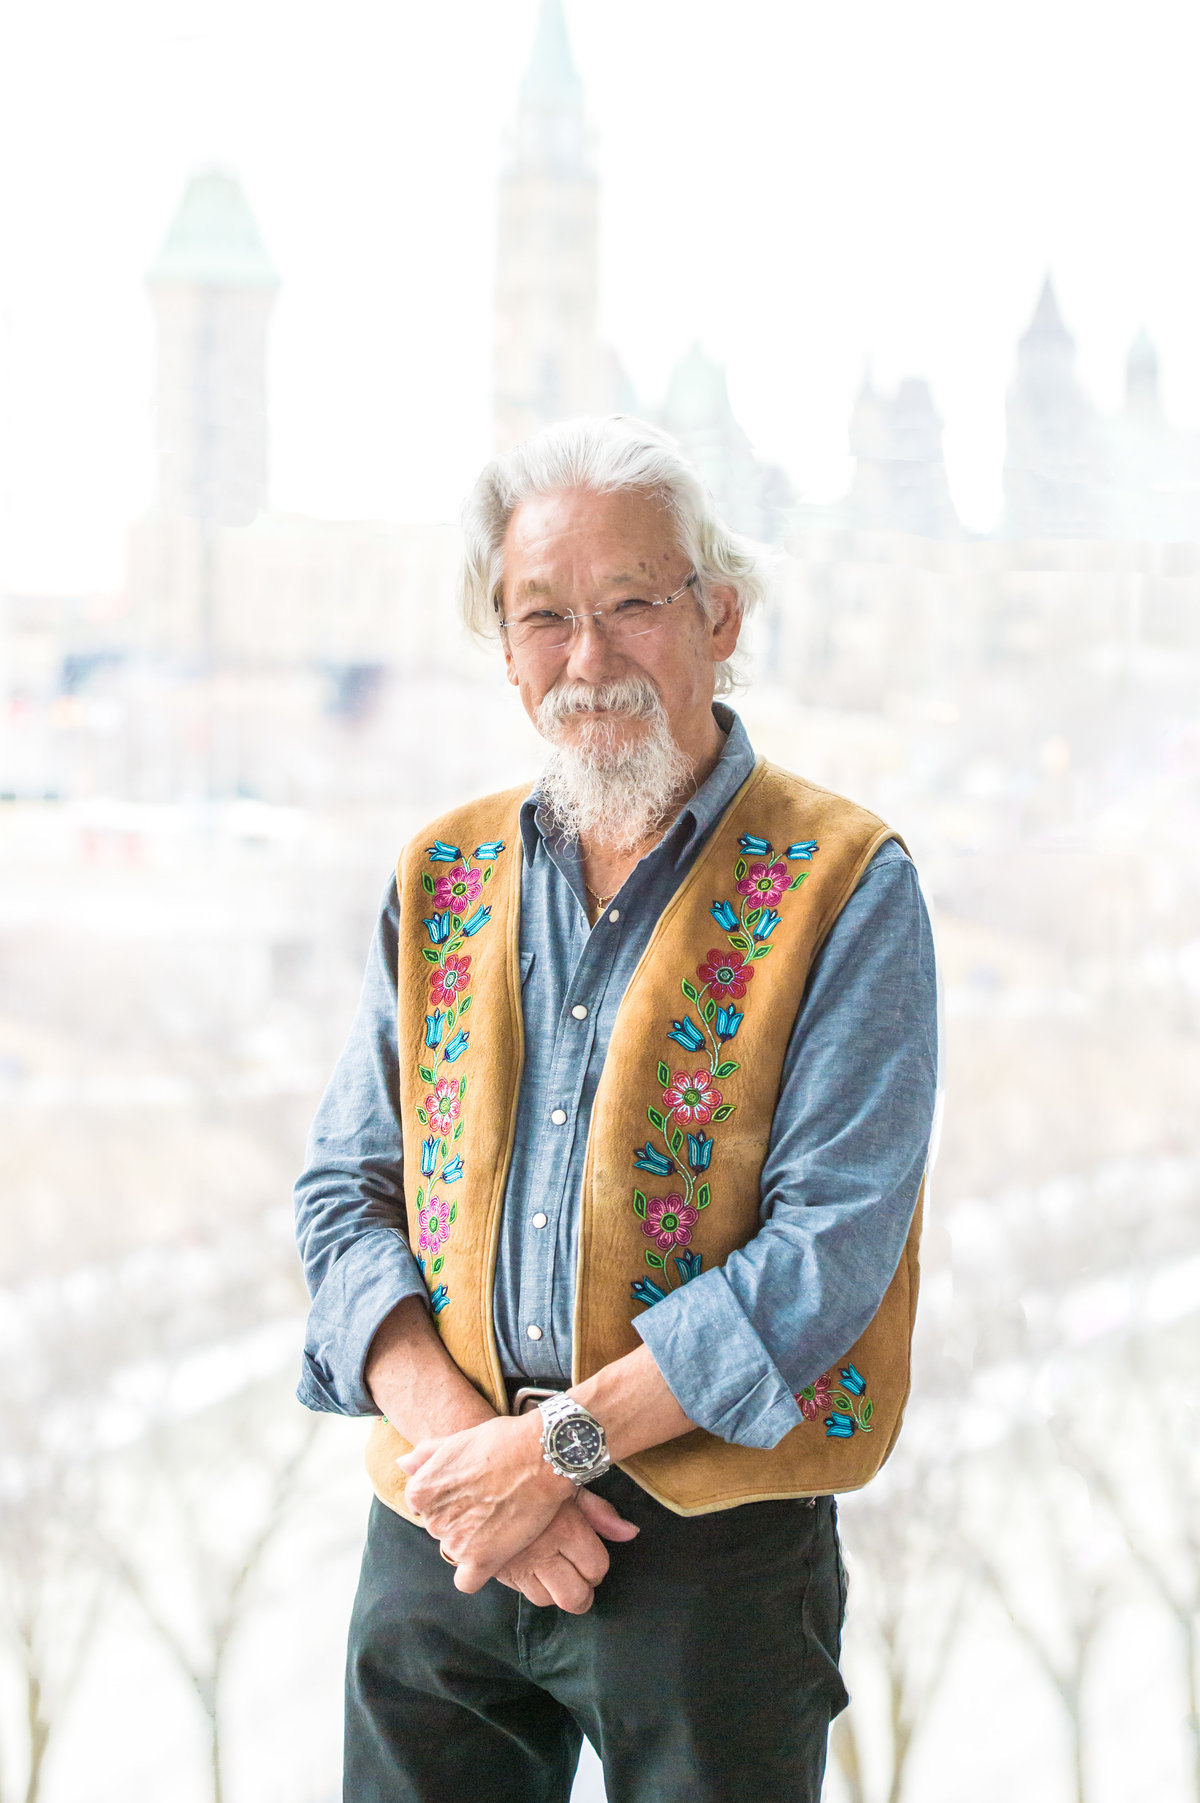 David-Suzuki-by-Brittany-Gawley-Photography-LR-55